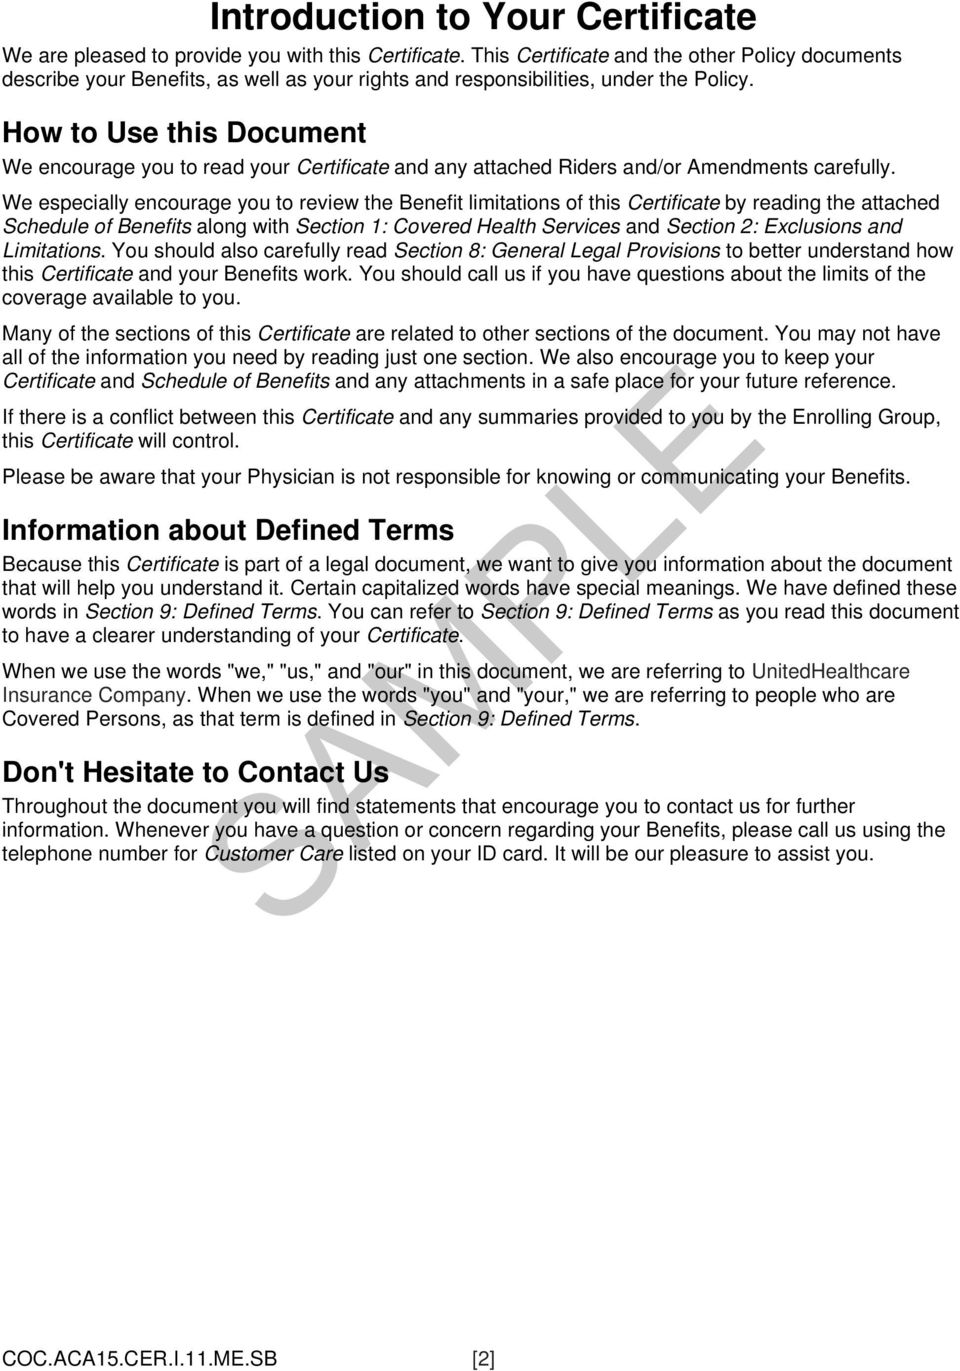 How to Use this Document We encourage you to read your Certificate and any attached Riders and/or Amendments carefully.